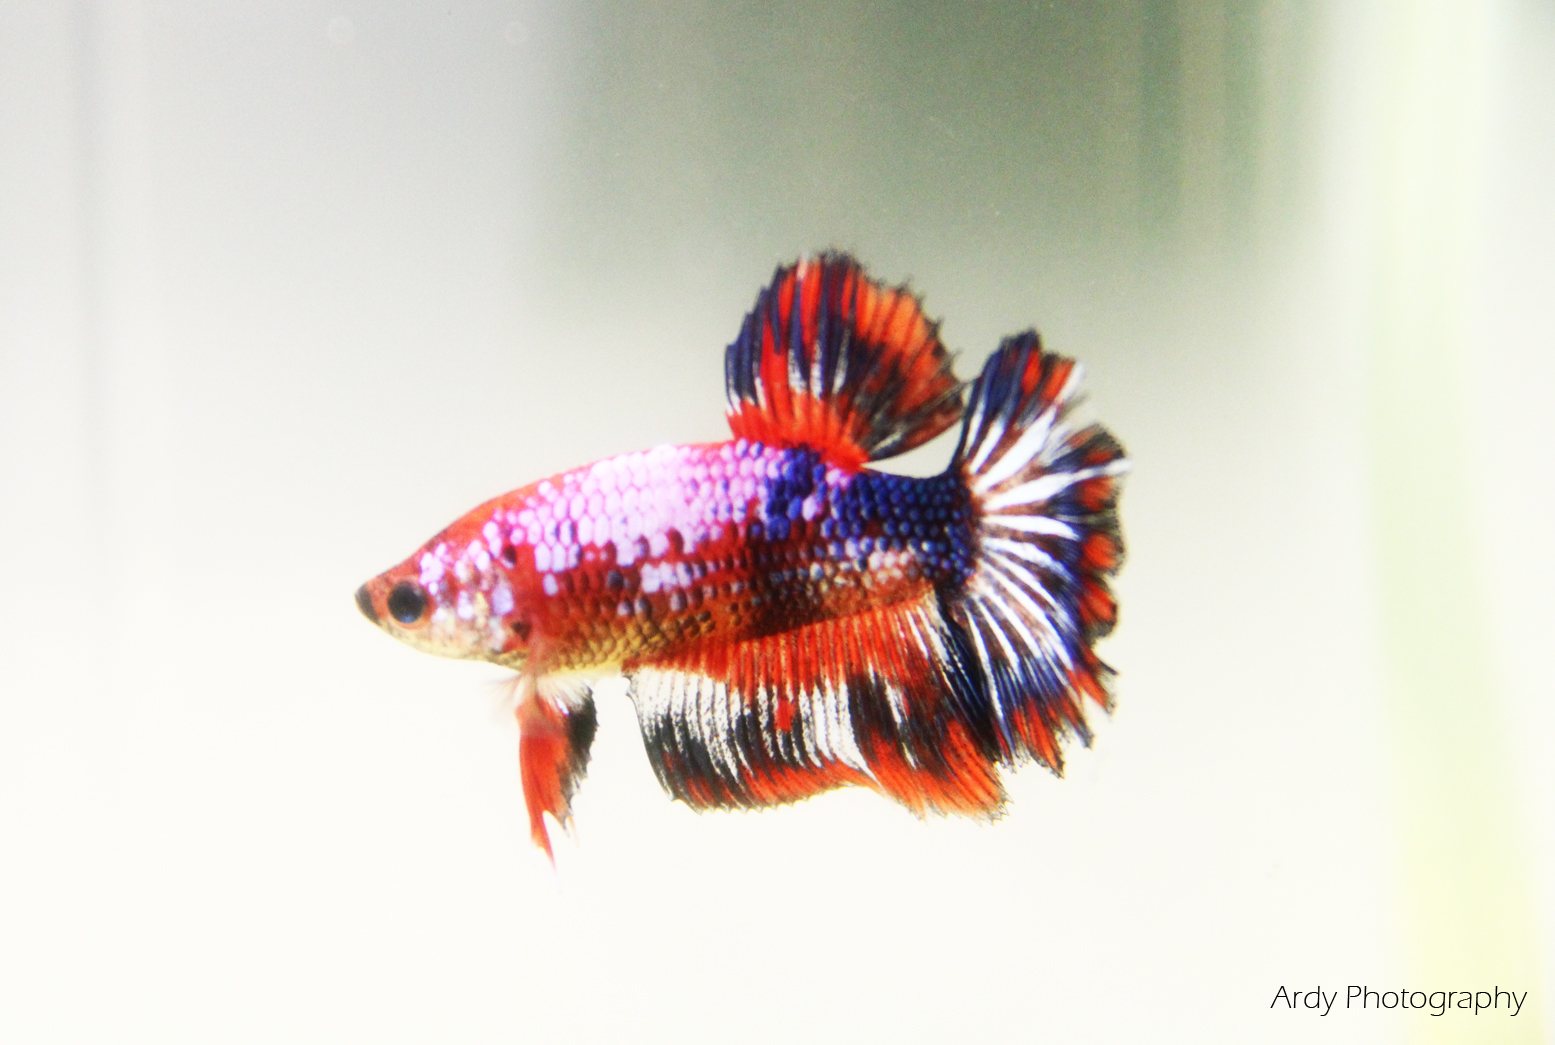 Conditioning the Female Betta